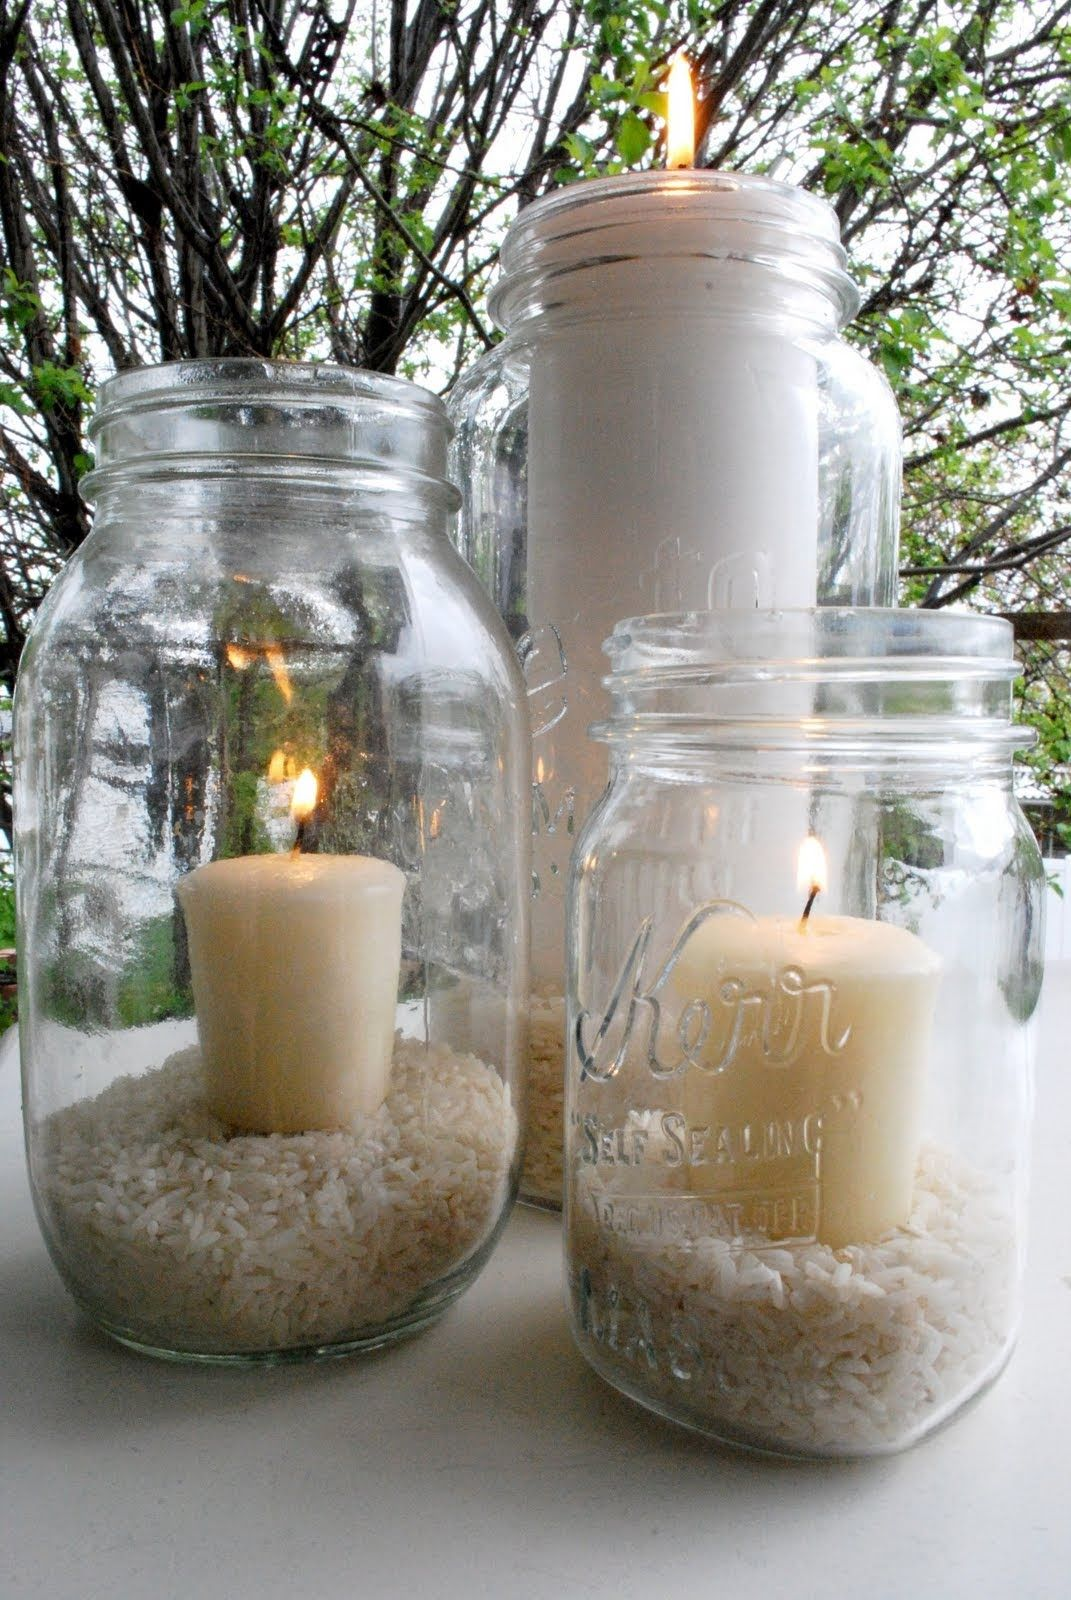 I am also slightly obsessed with canning jars. Decorating IdeasCraft ... & So simple. I am also slightly obsessed with canning jars. | Home n ...